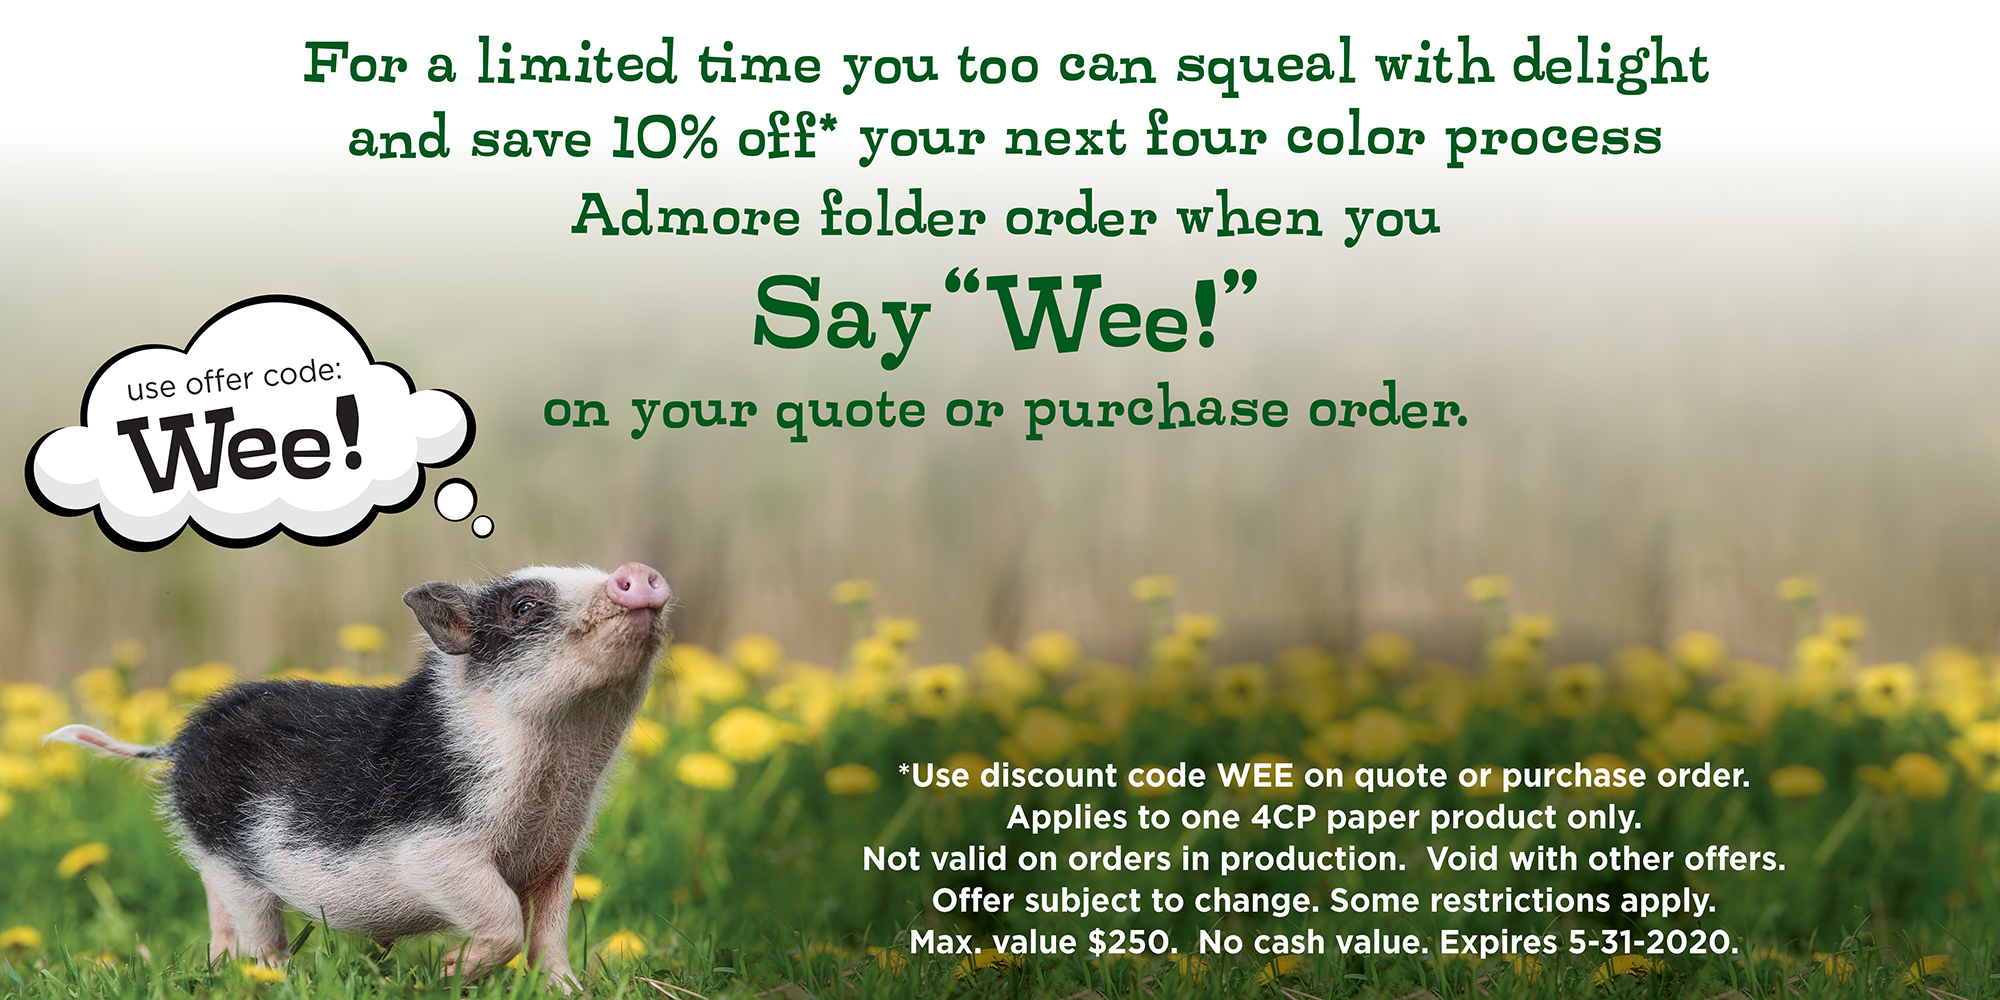 Say Wee! and Save 10%